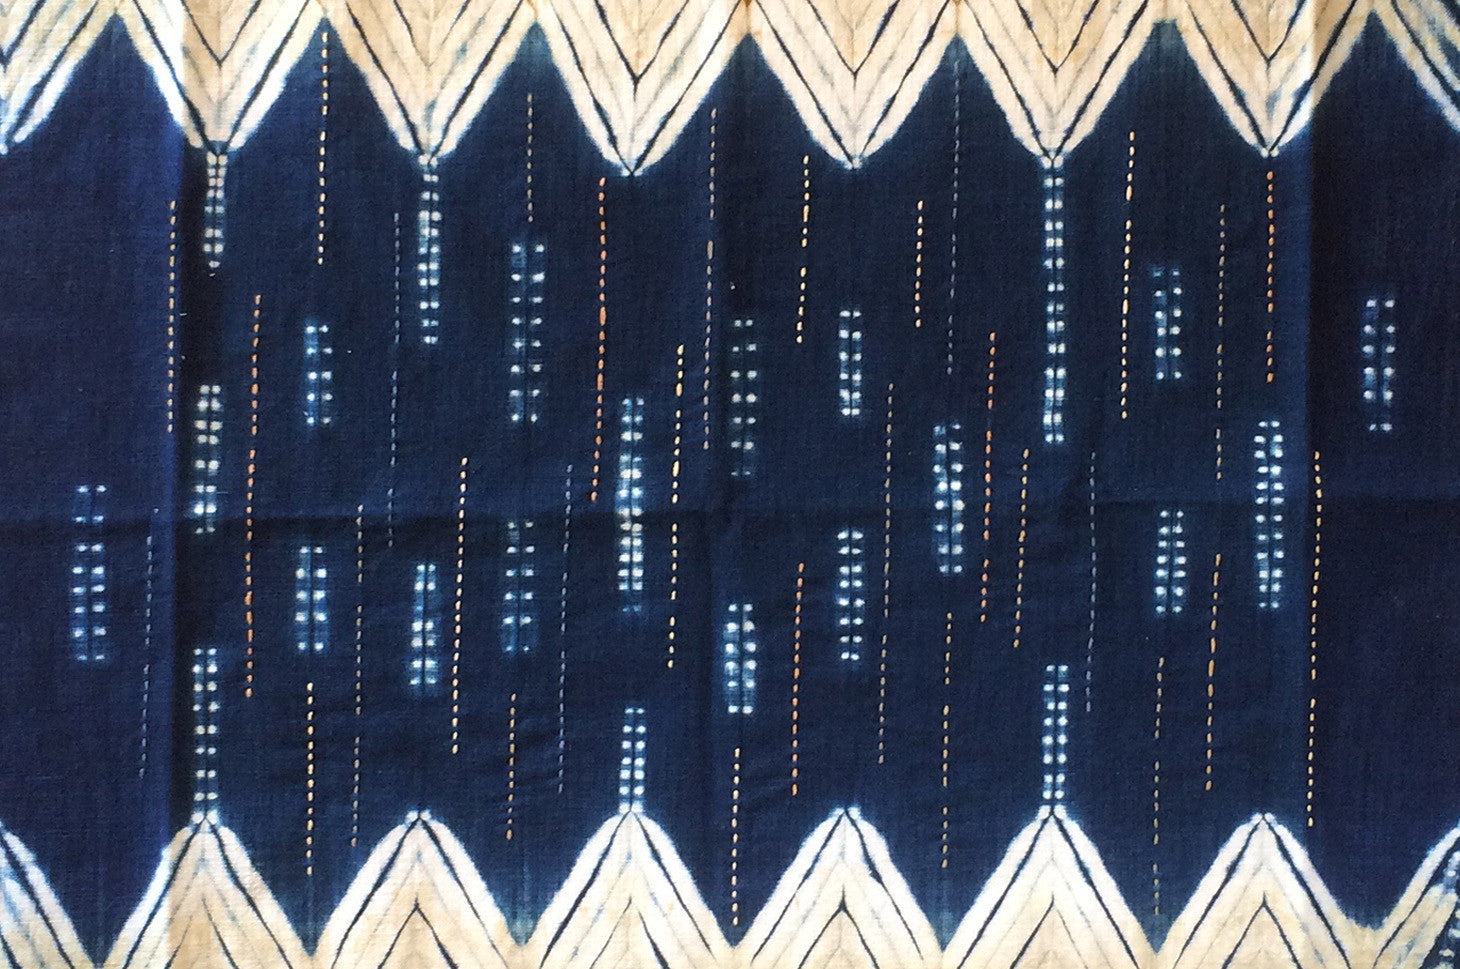 Shibori and Indigo at Slowstitch Studio